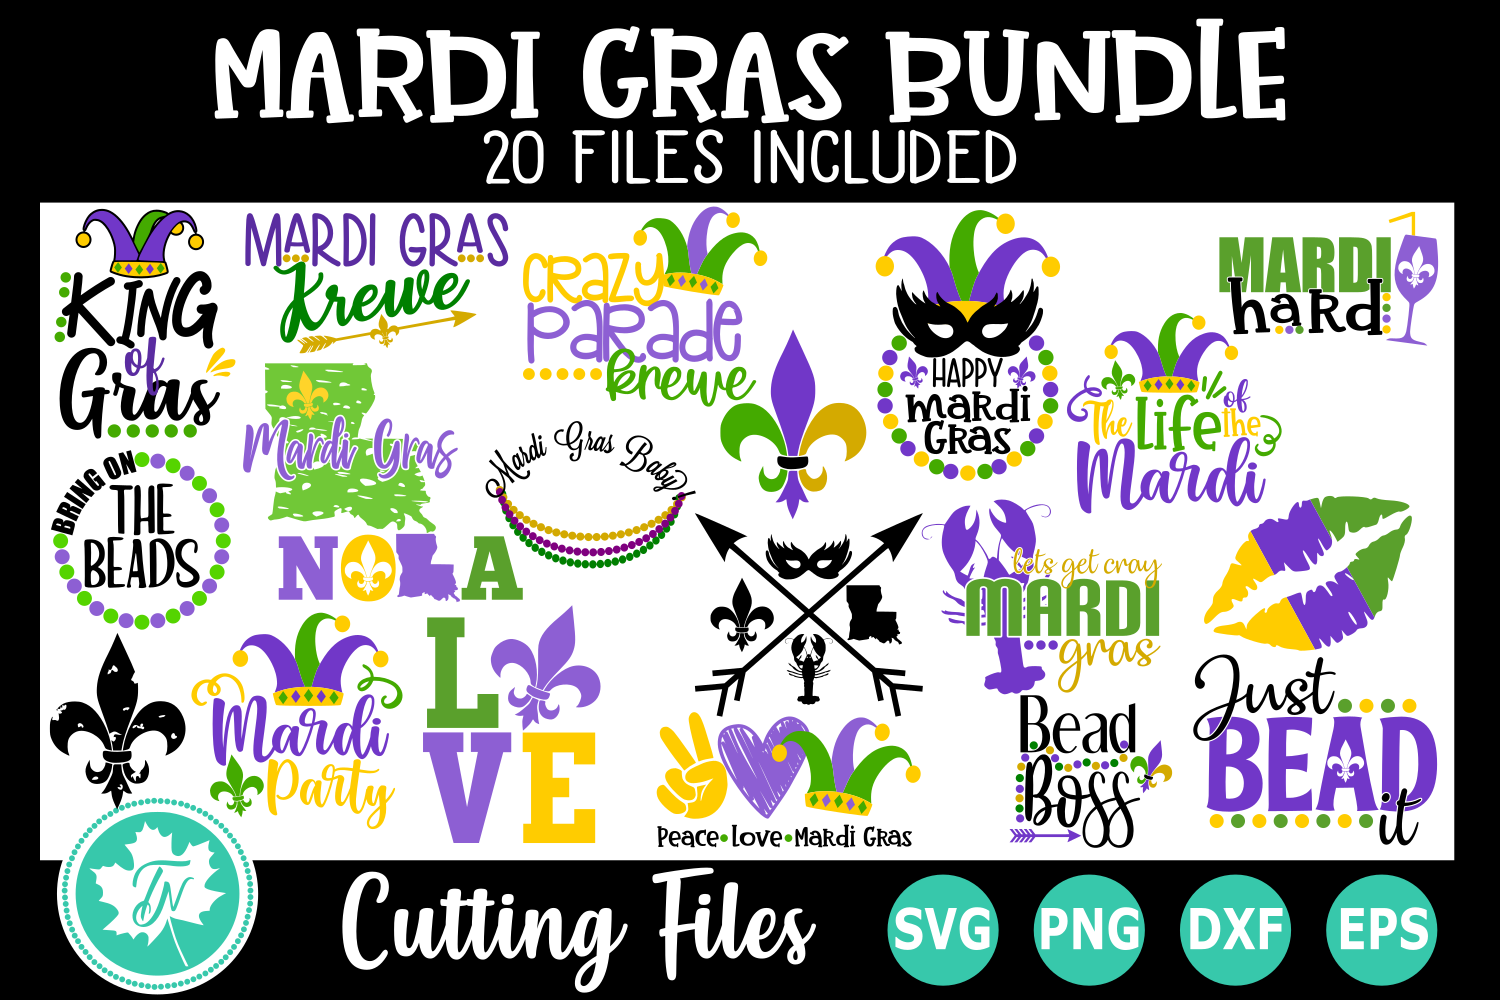 Download Free Mardi Gras Bundle Graphic By Truenorthimagesca Creative Fabrica for Cricut Explore, Silhouette and other cutting machines.